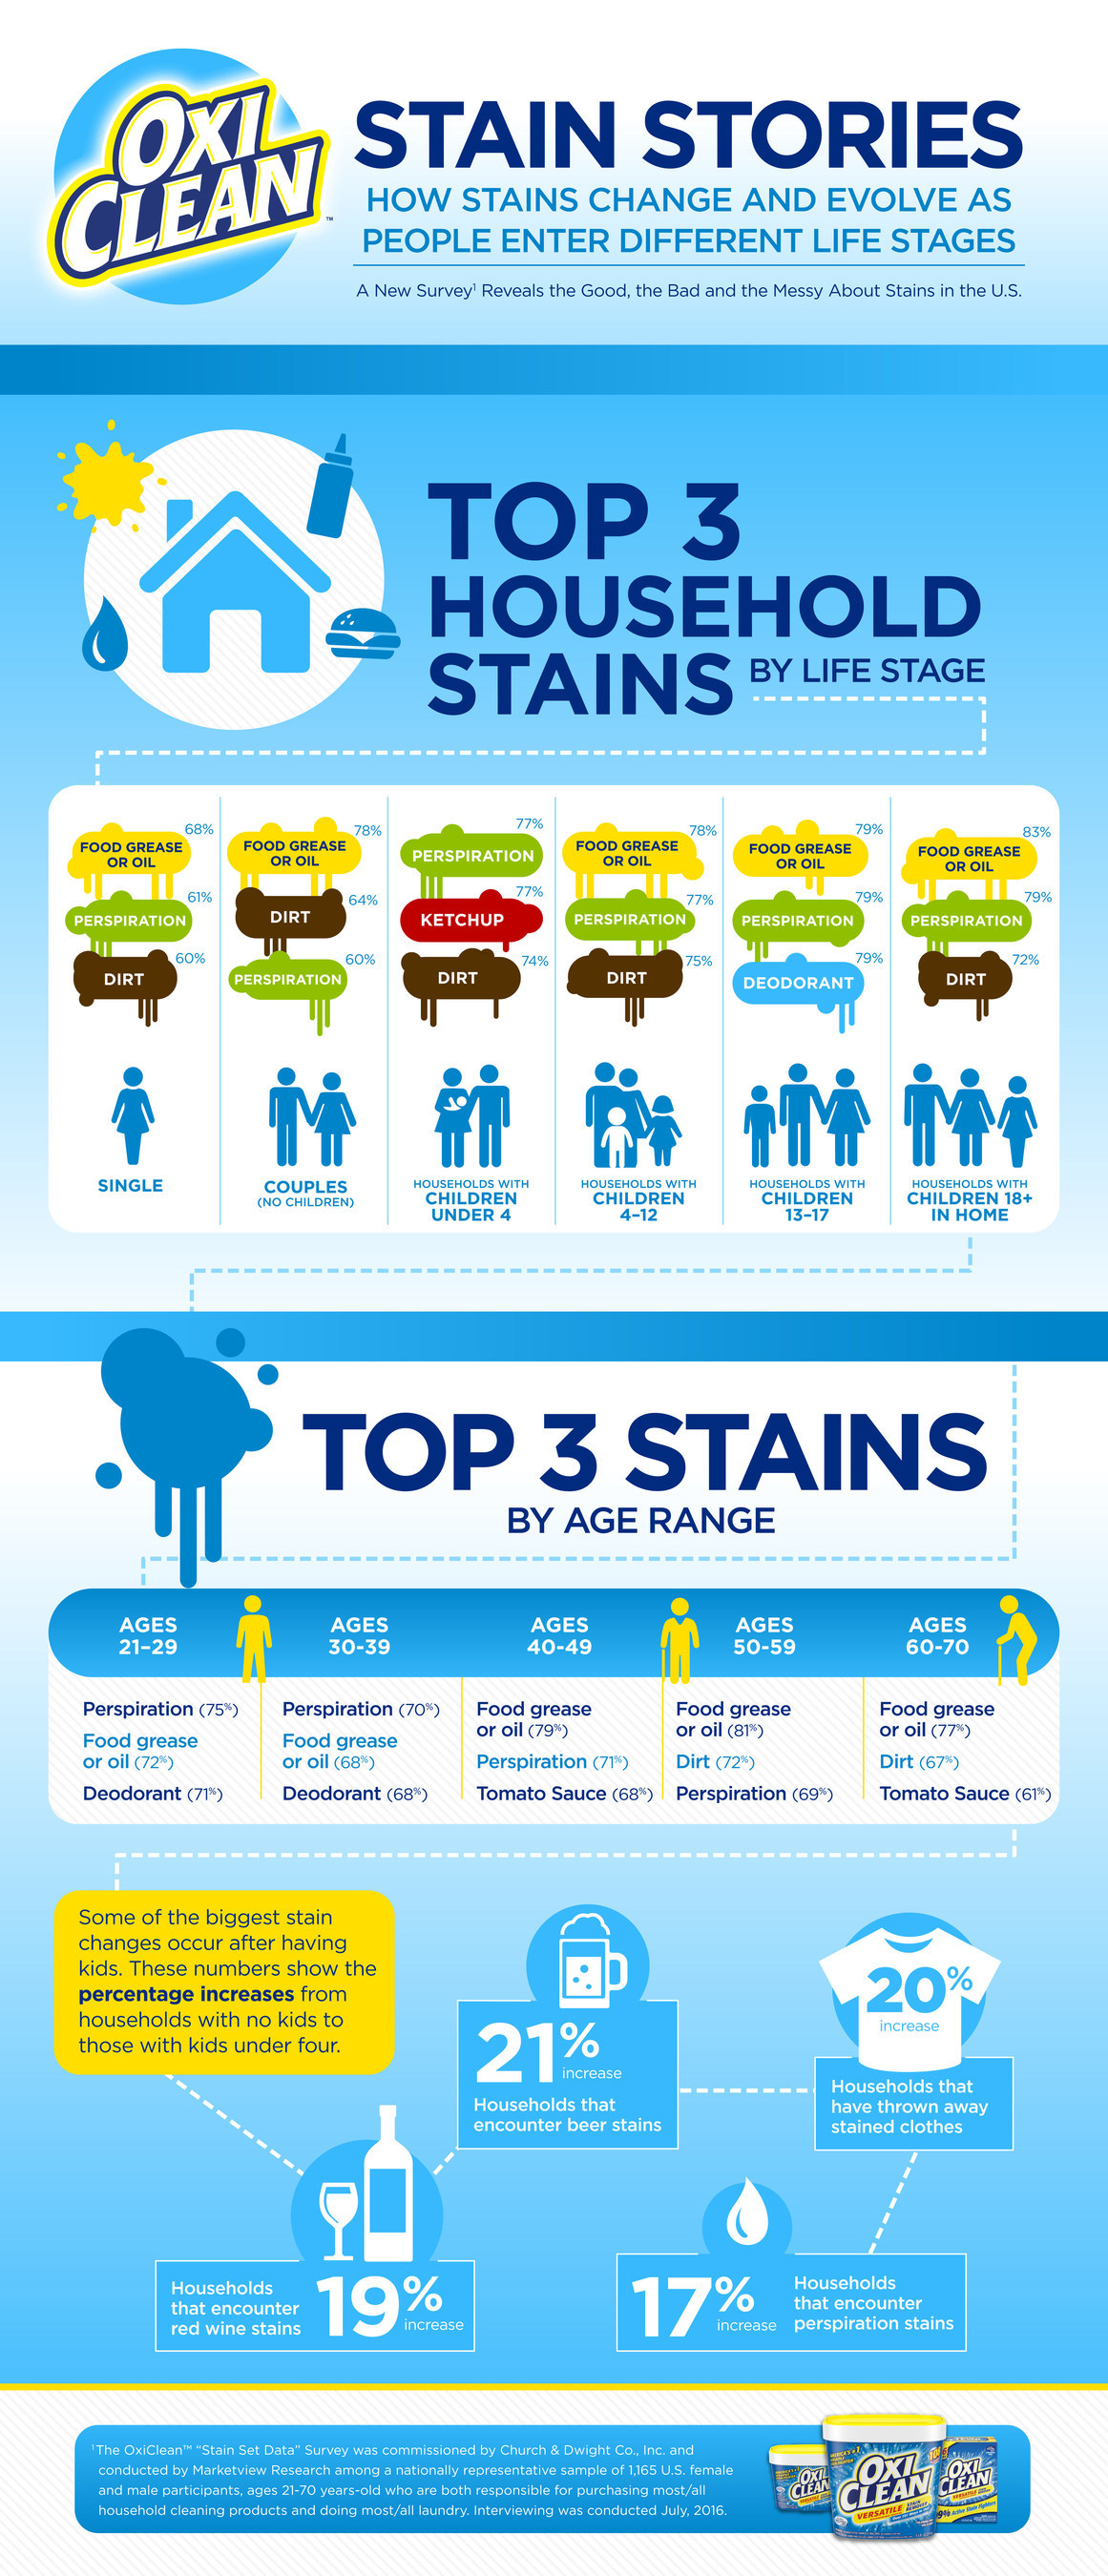 OxiClean™ Uncovers How Stains Change and Evolve as People Enter Different Life Stages